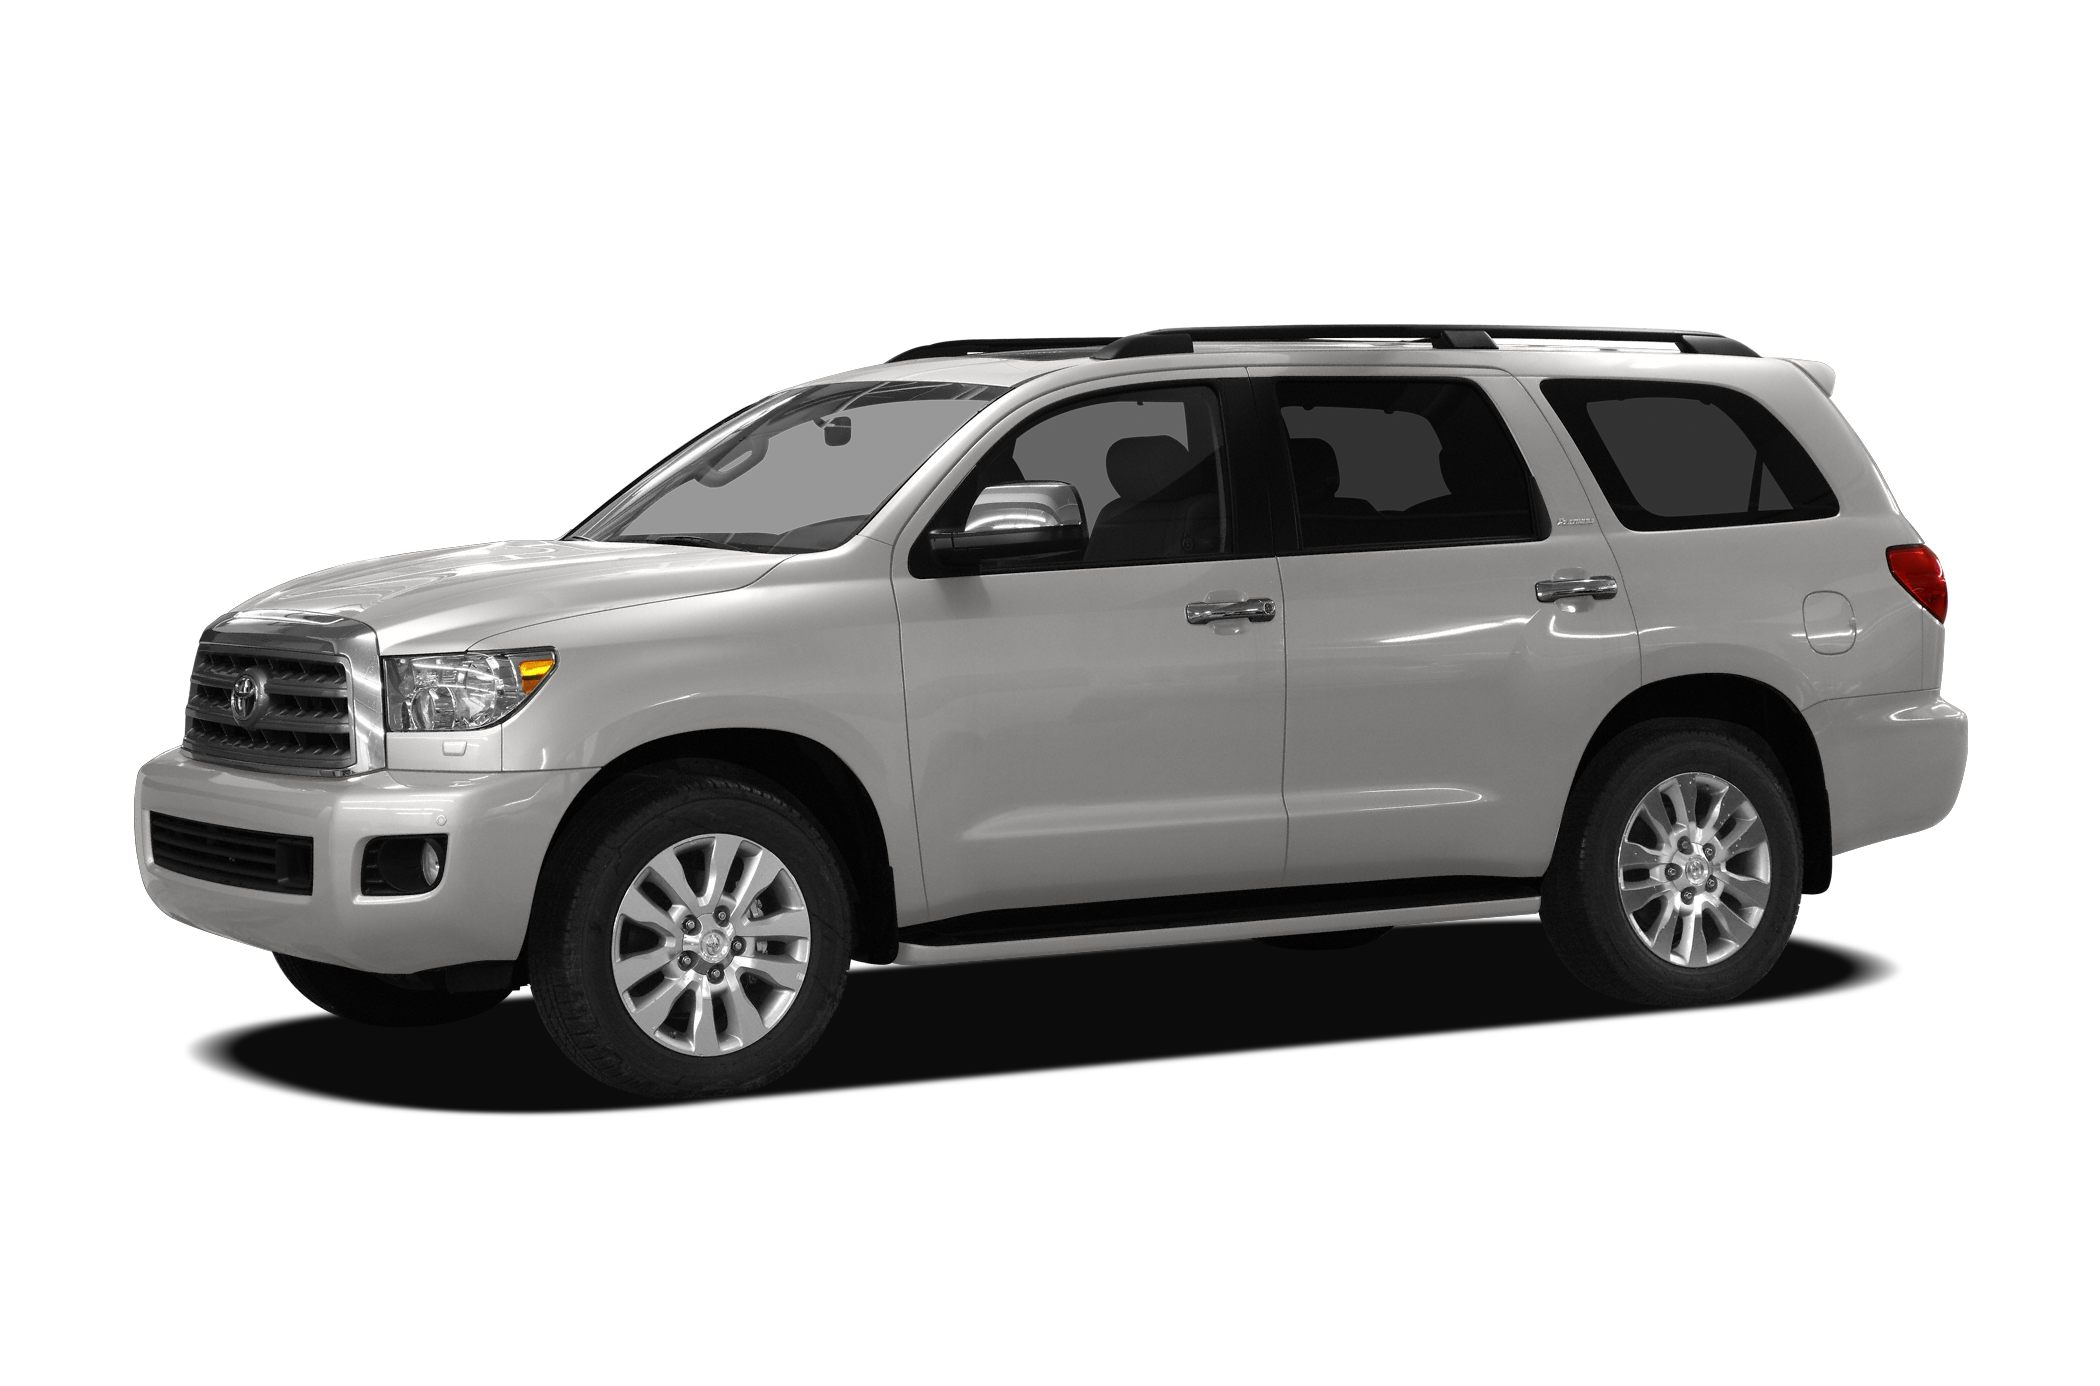 2008 Toyota Sequoia Limited This 2008 Toyota Sequoia 4dr RWD 4dr LV8 6-Speed Automatic Ltd feature